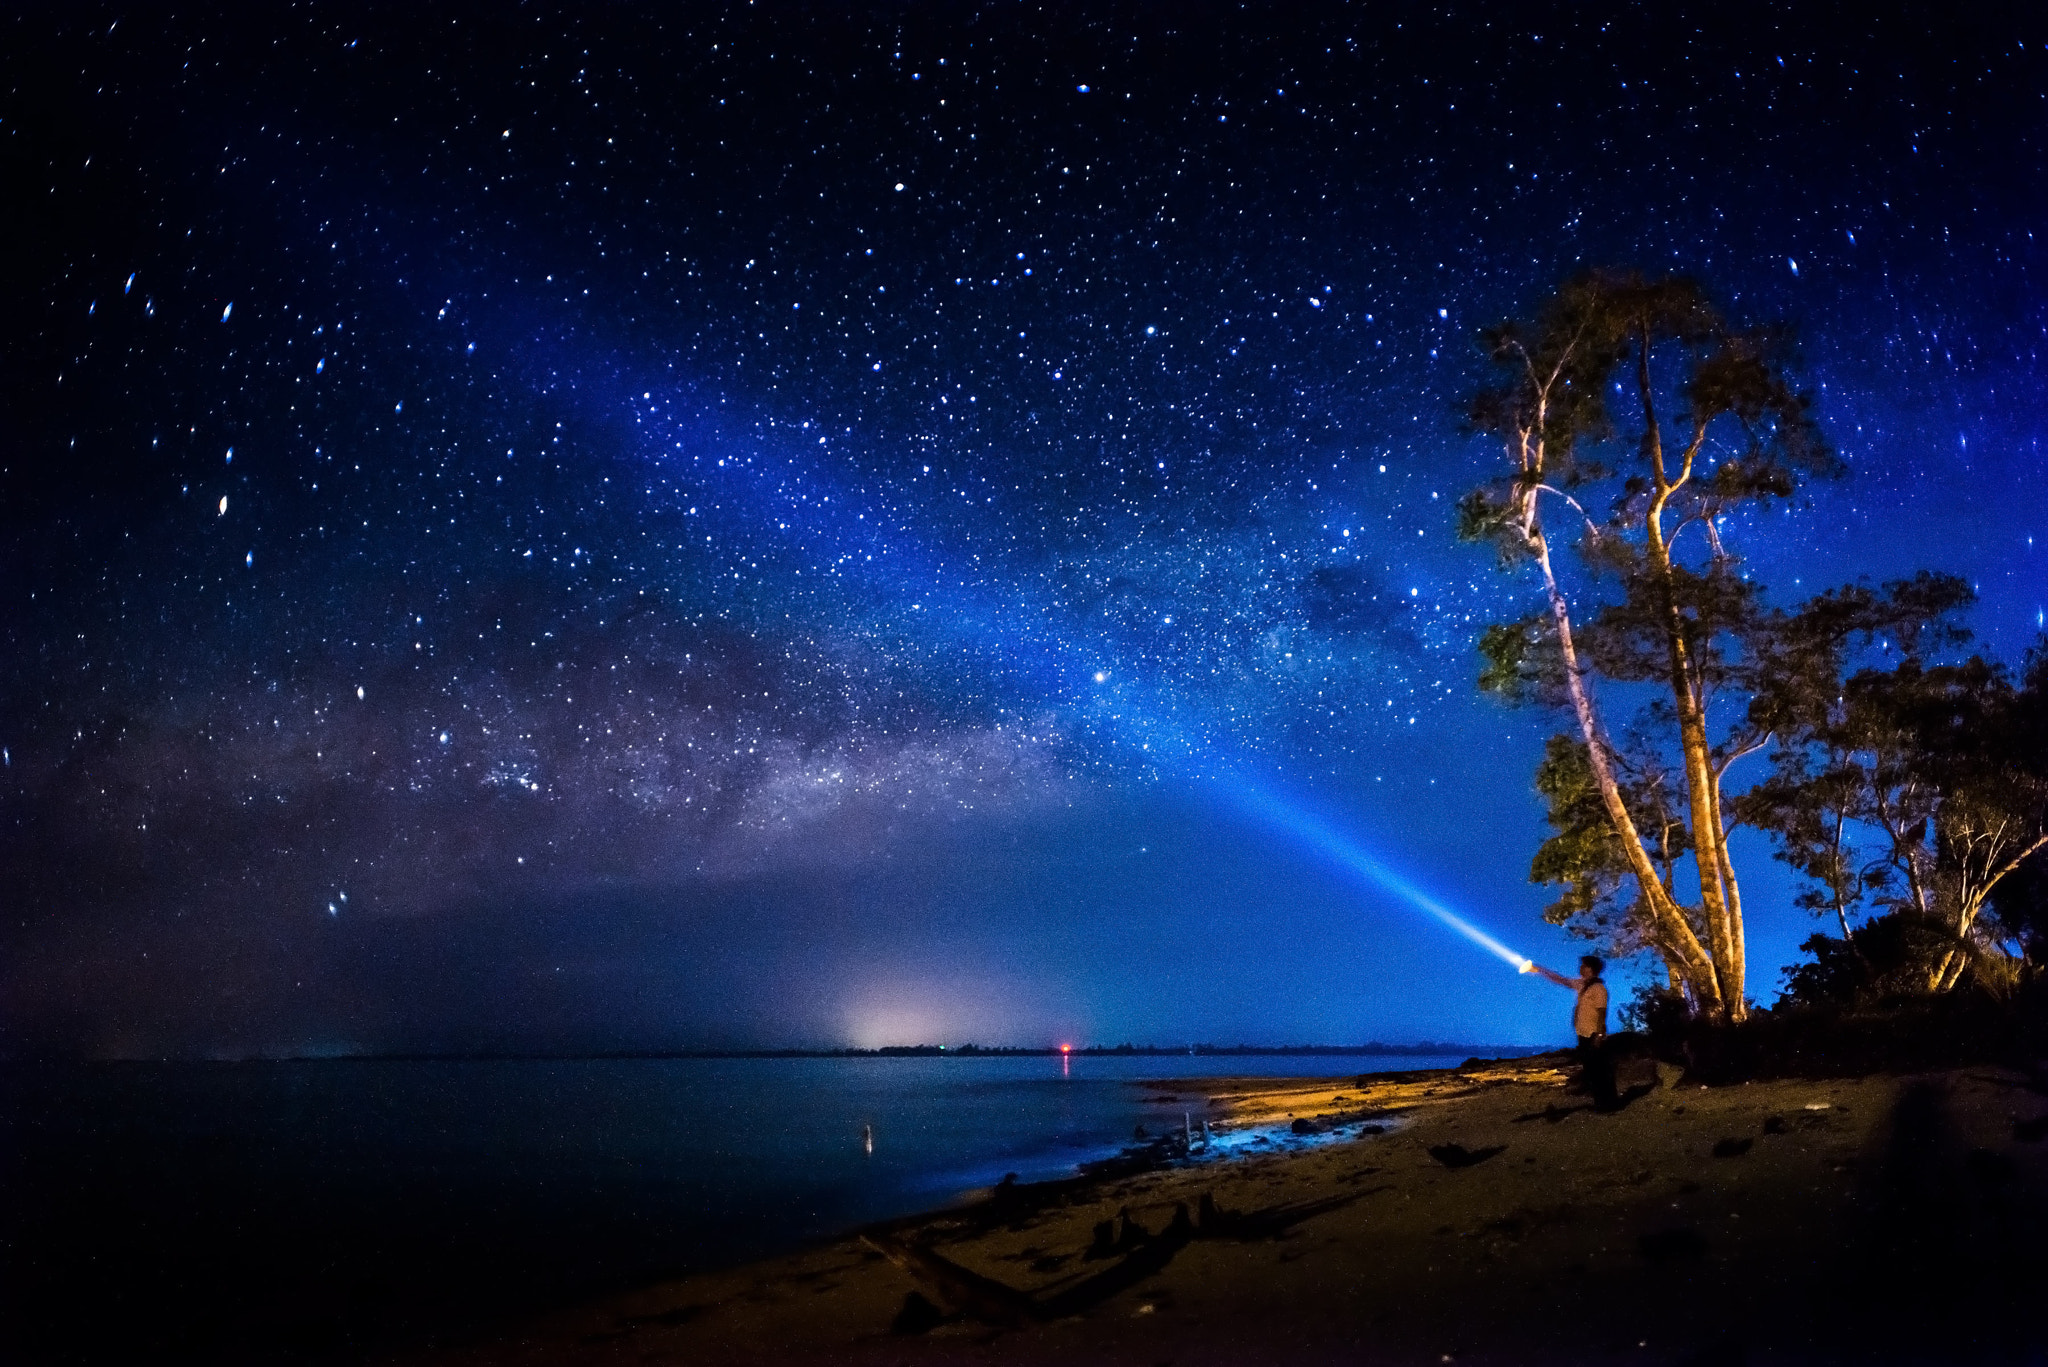 Photograph Light Saber & Milky Way by Esmar Abdul on 500px